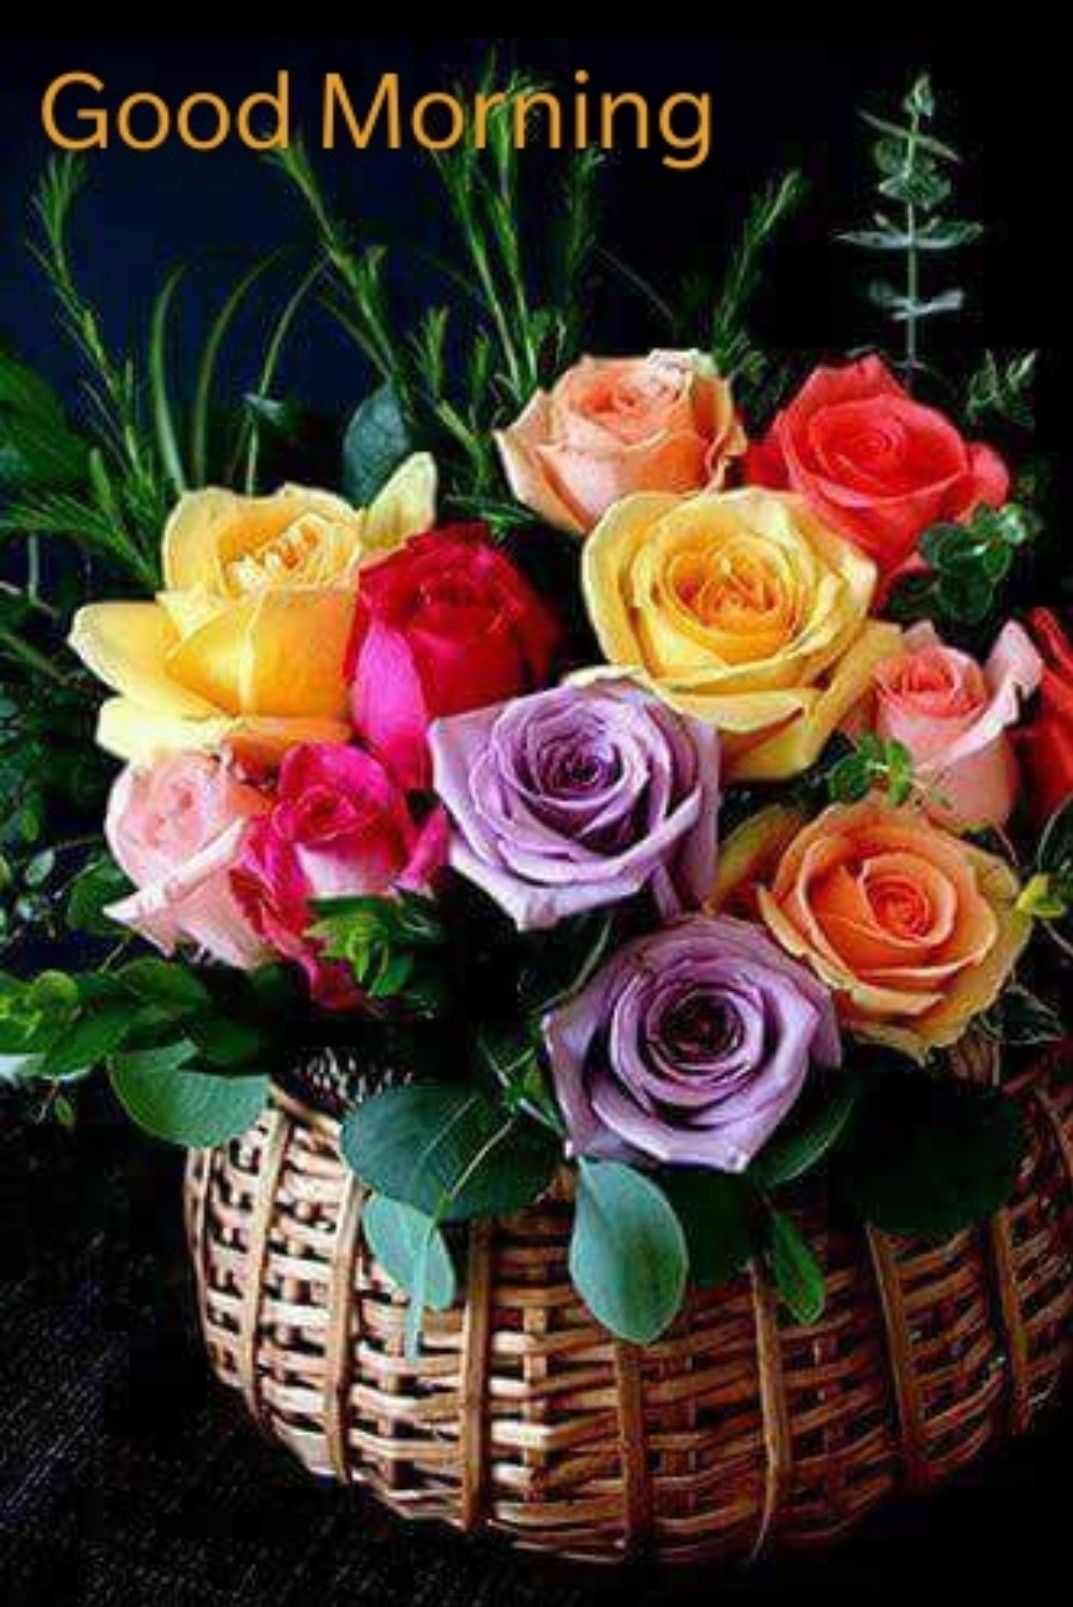 Good Morning With Colourful Roses In Wooden Basket V